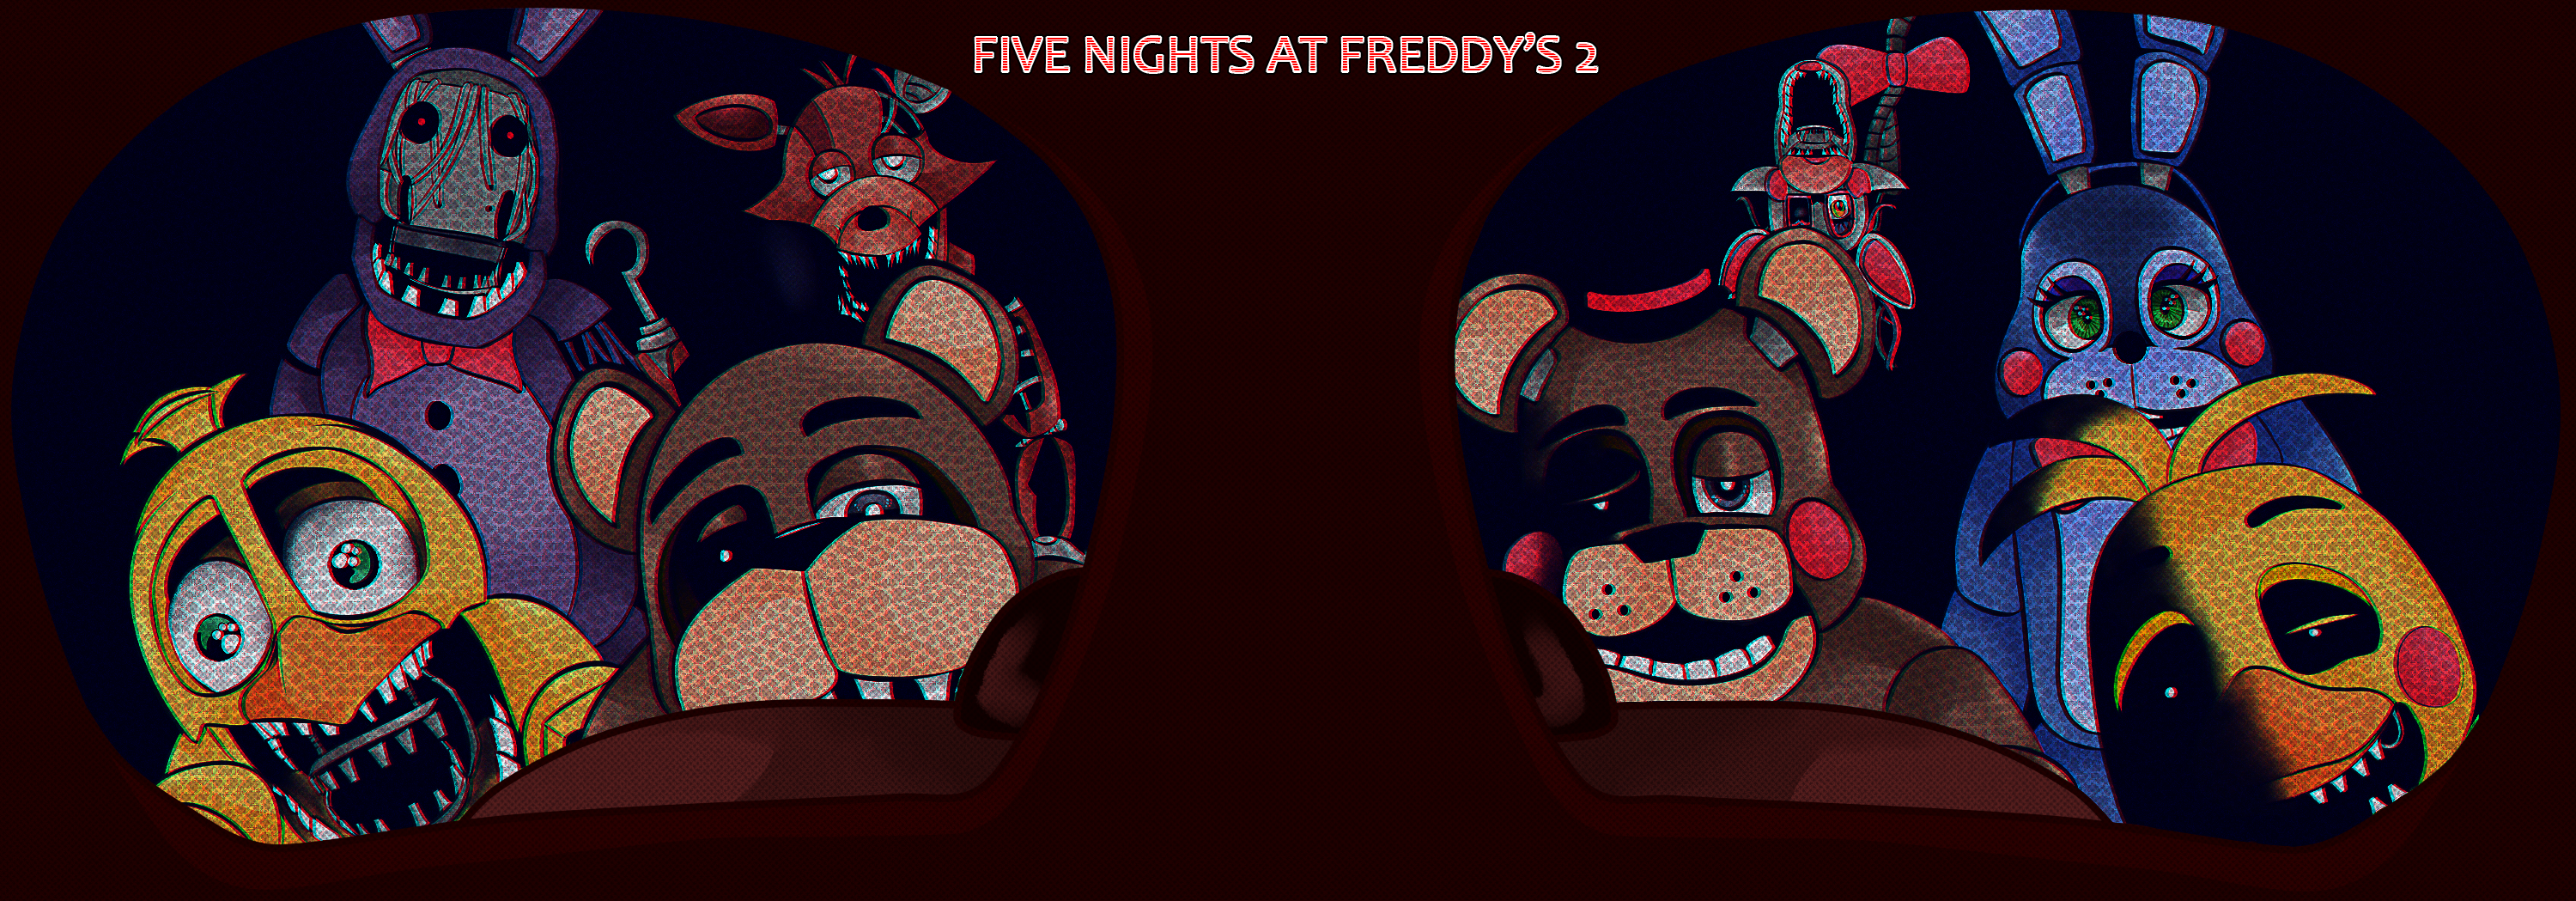 Freddys 2 nights at five 5 night at freddy 2 view original